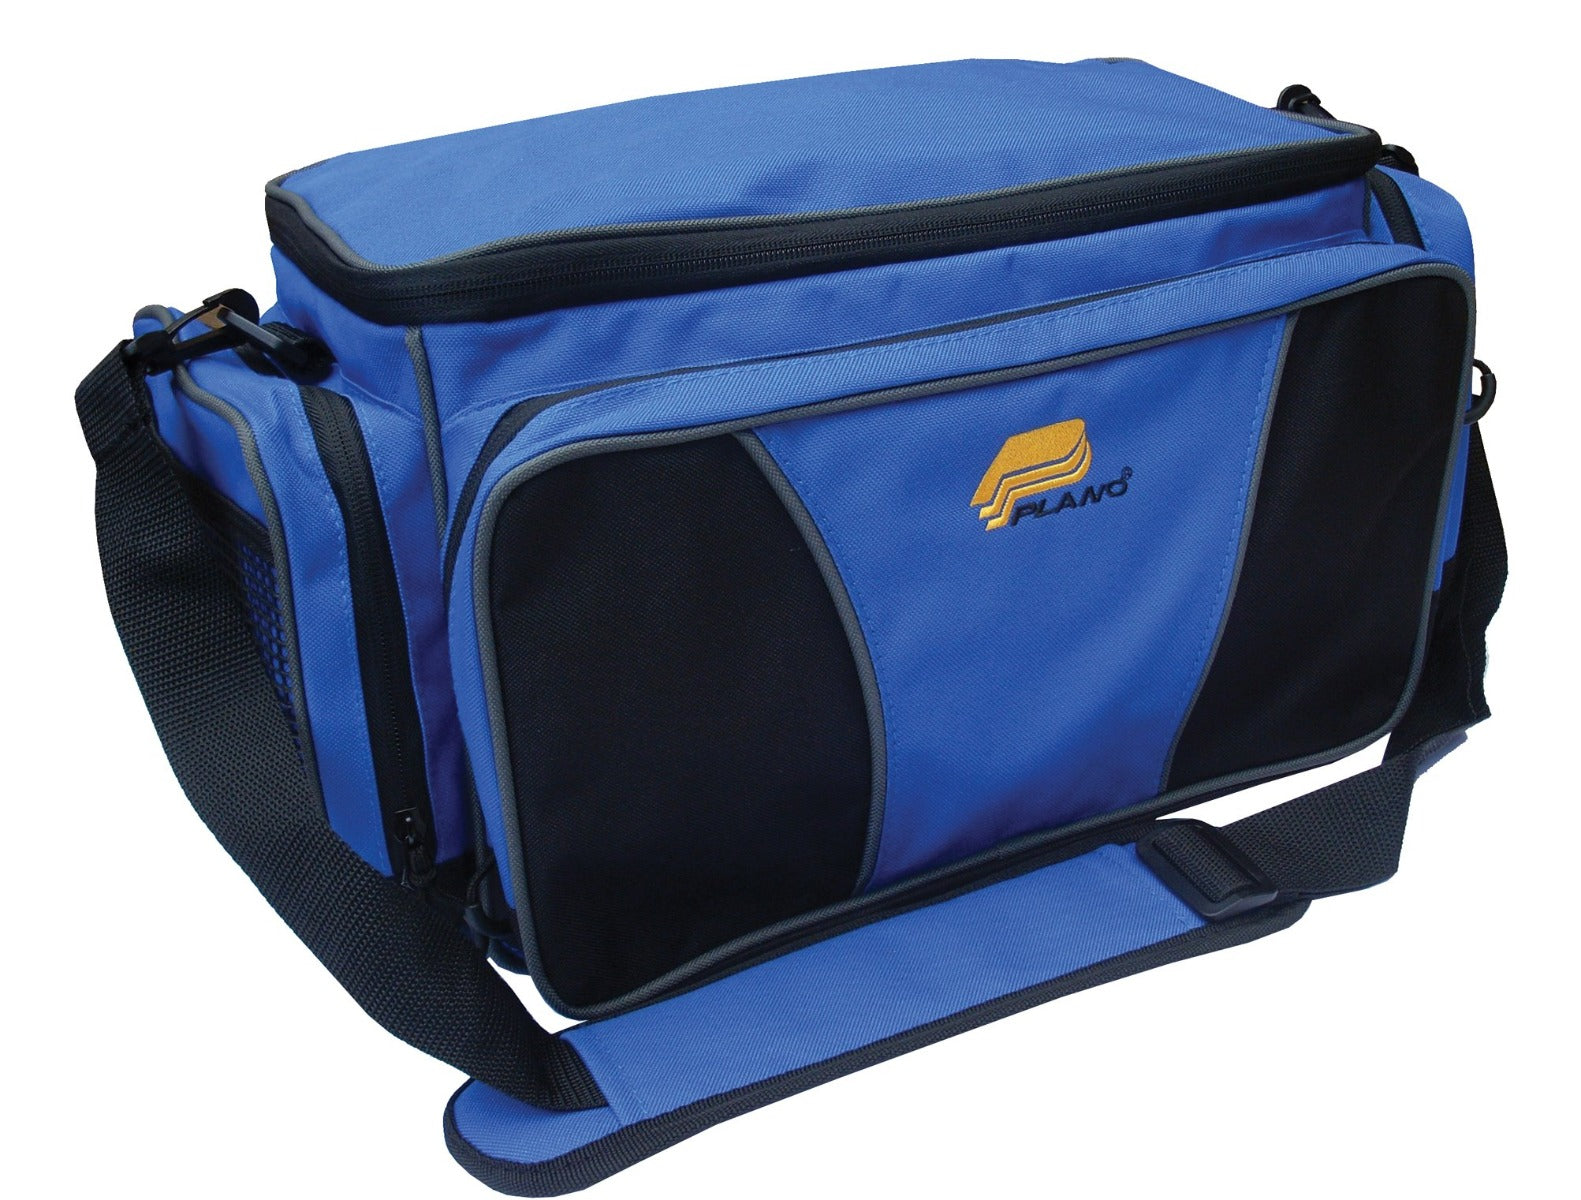 Plano Weekender 4436 Tackle Bag